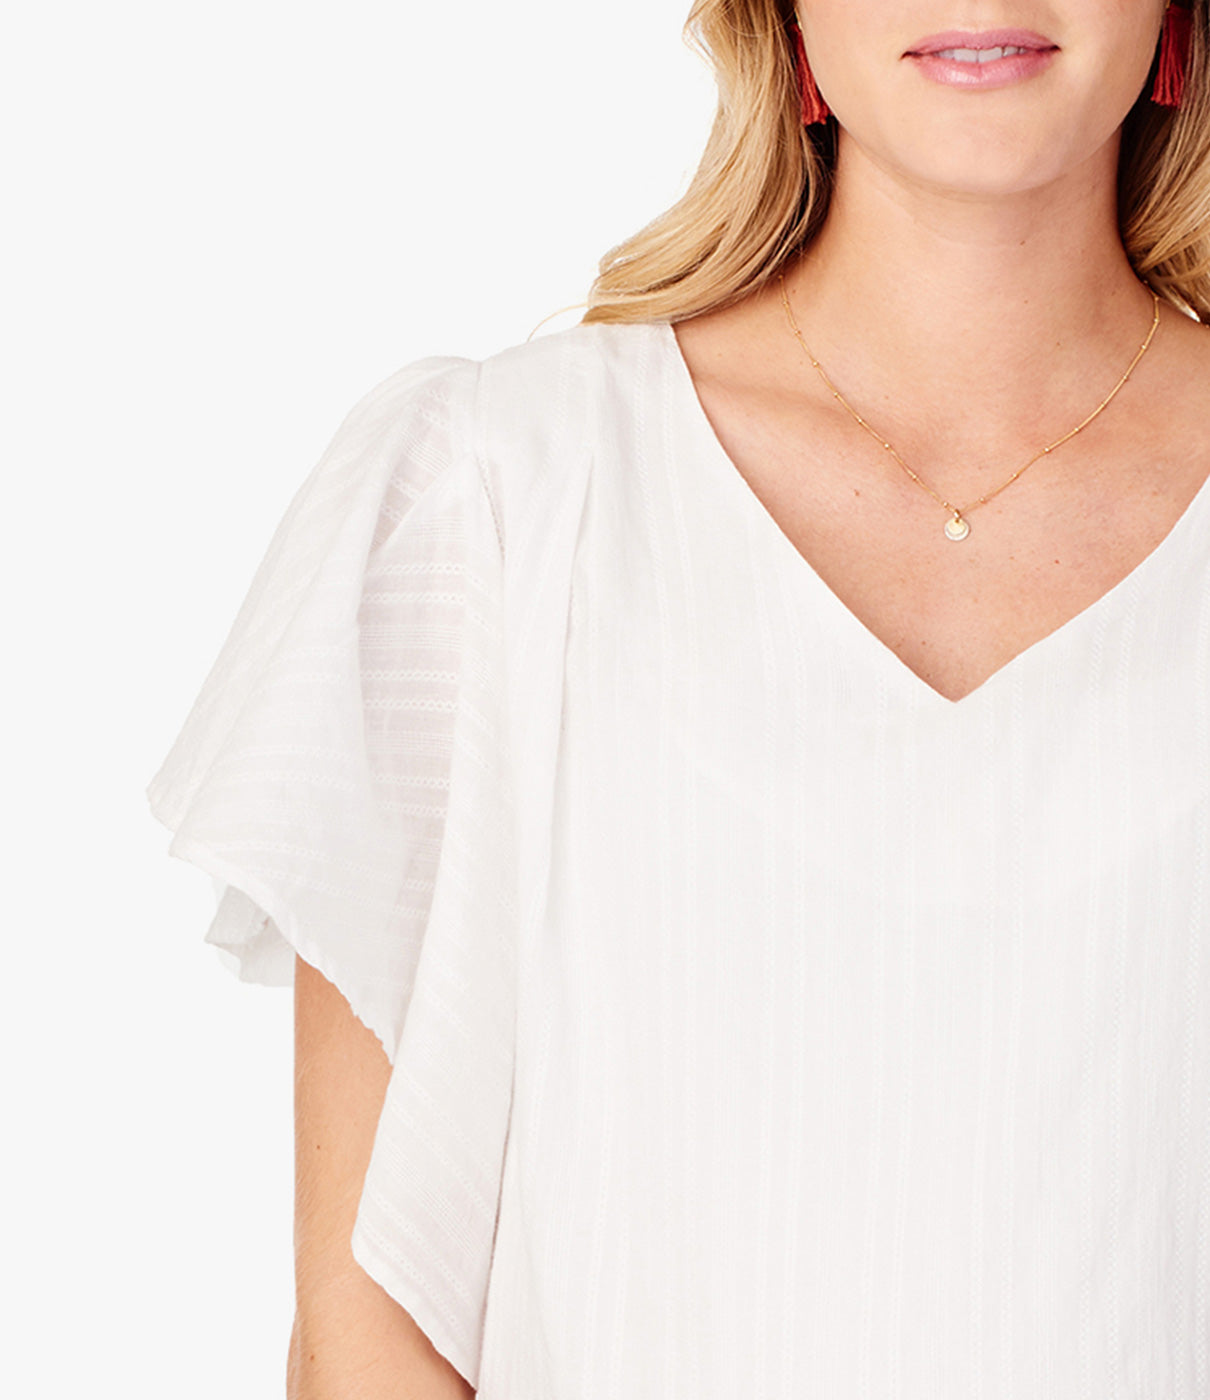 Fashion + FunctionFlutter sleeves offer flattering arm coverage.